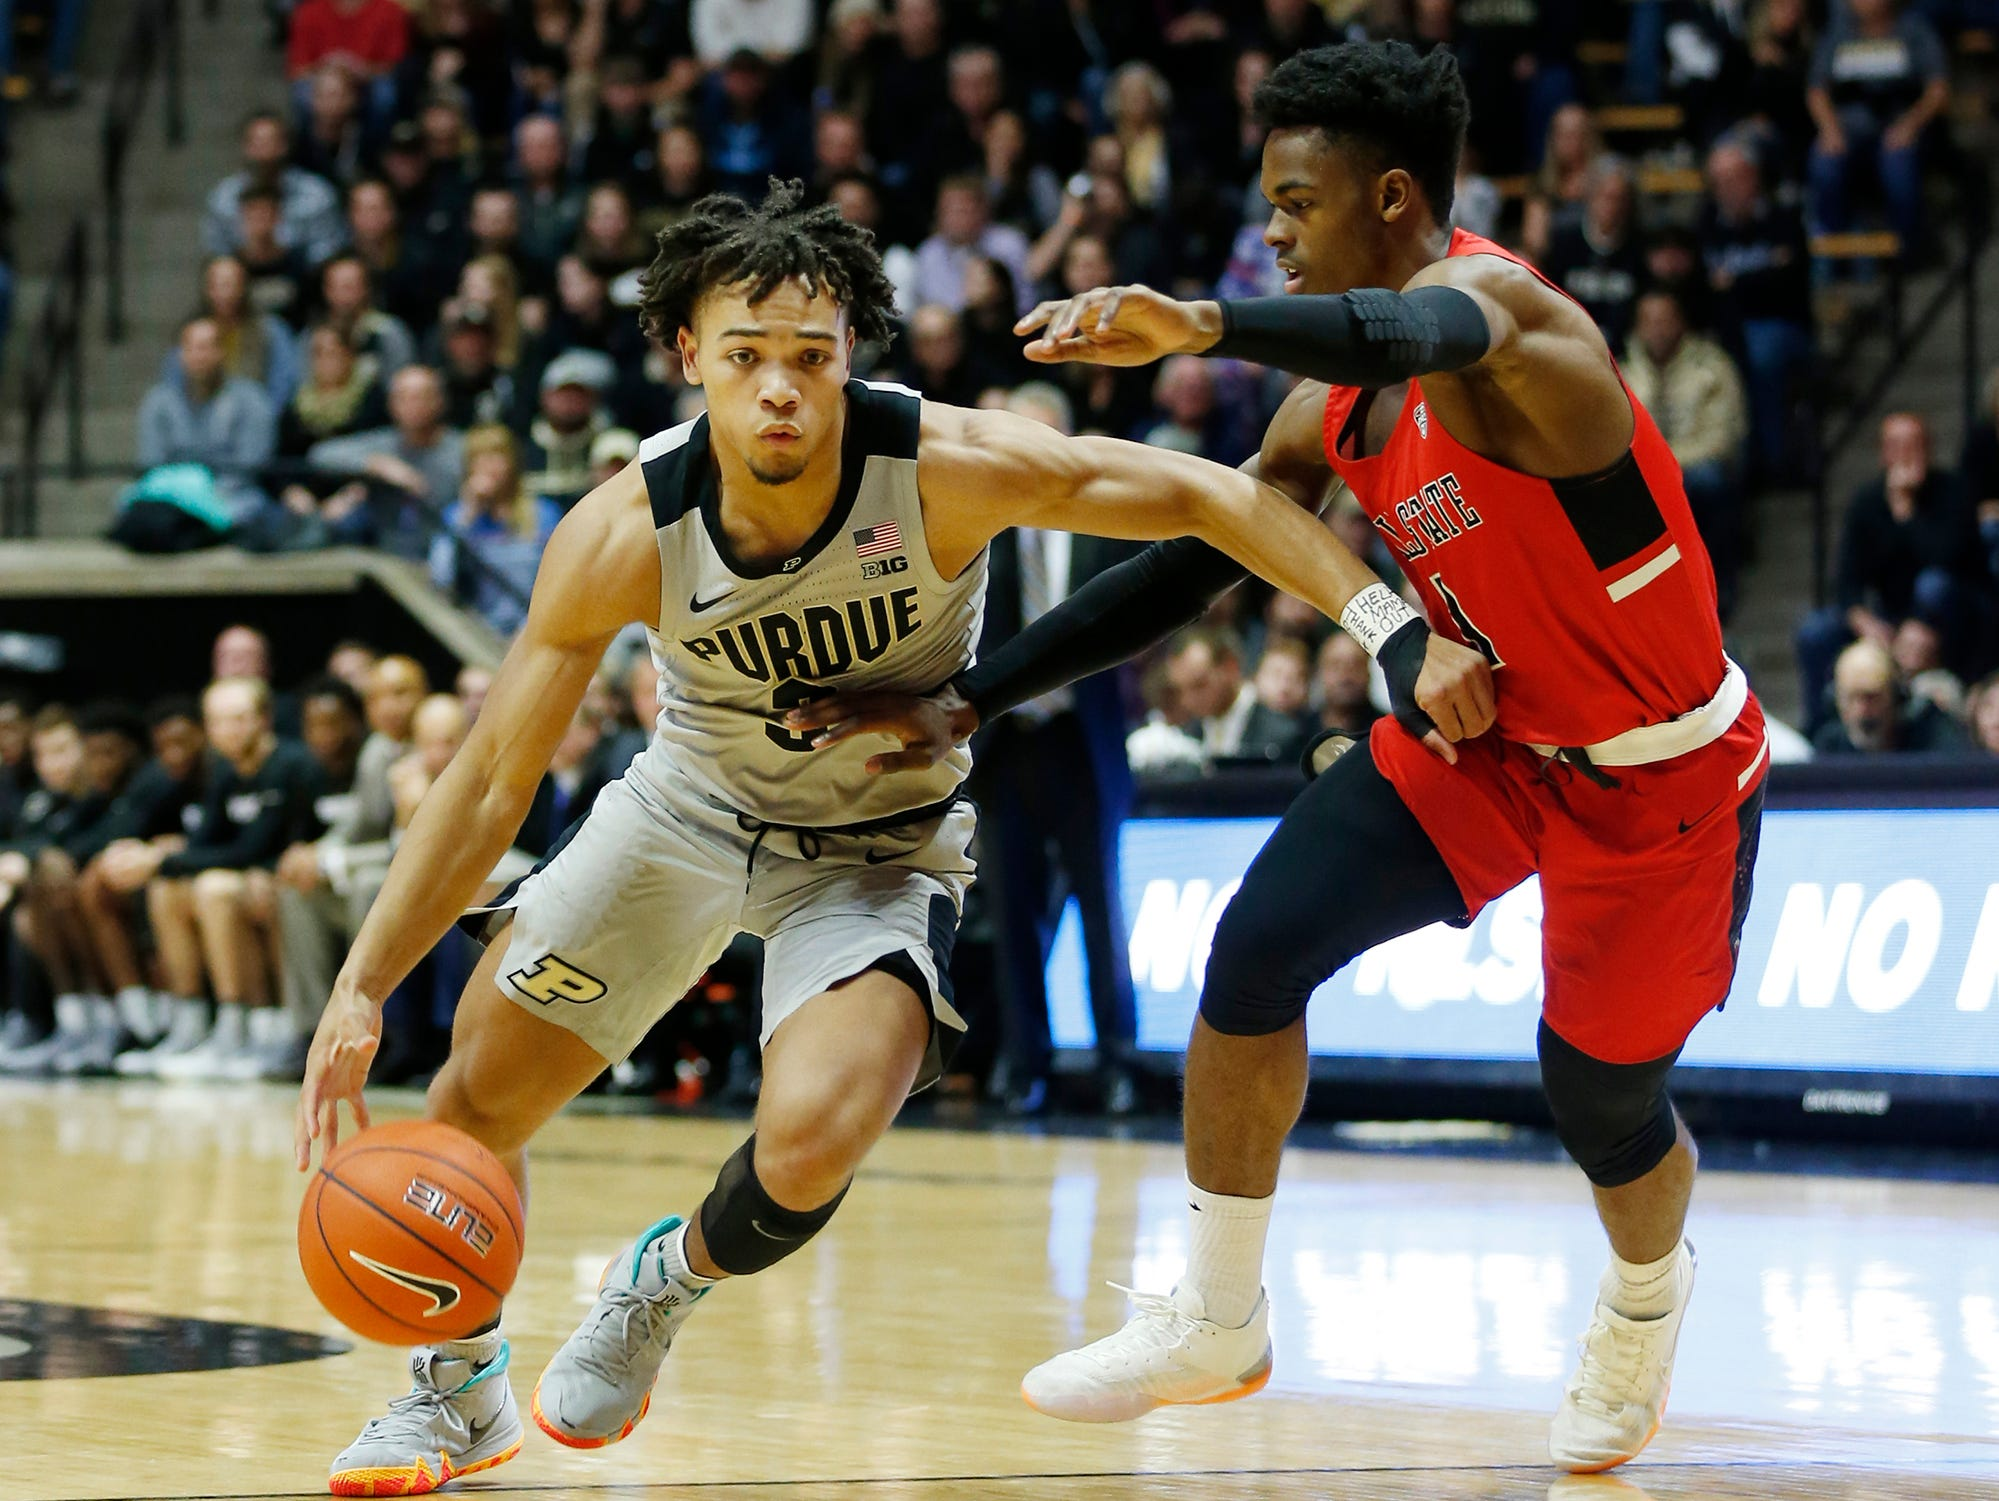 Carsen Edwards of Purdue works to get past K. J. Walton of Ball State Saturday, November 10, 2018, at Mackey Arena. Purdue defeated Ball State 84-75.